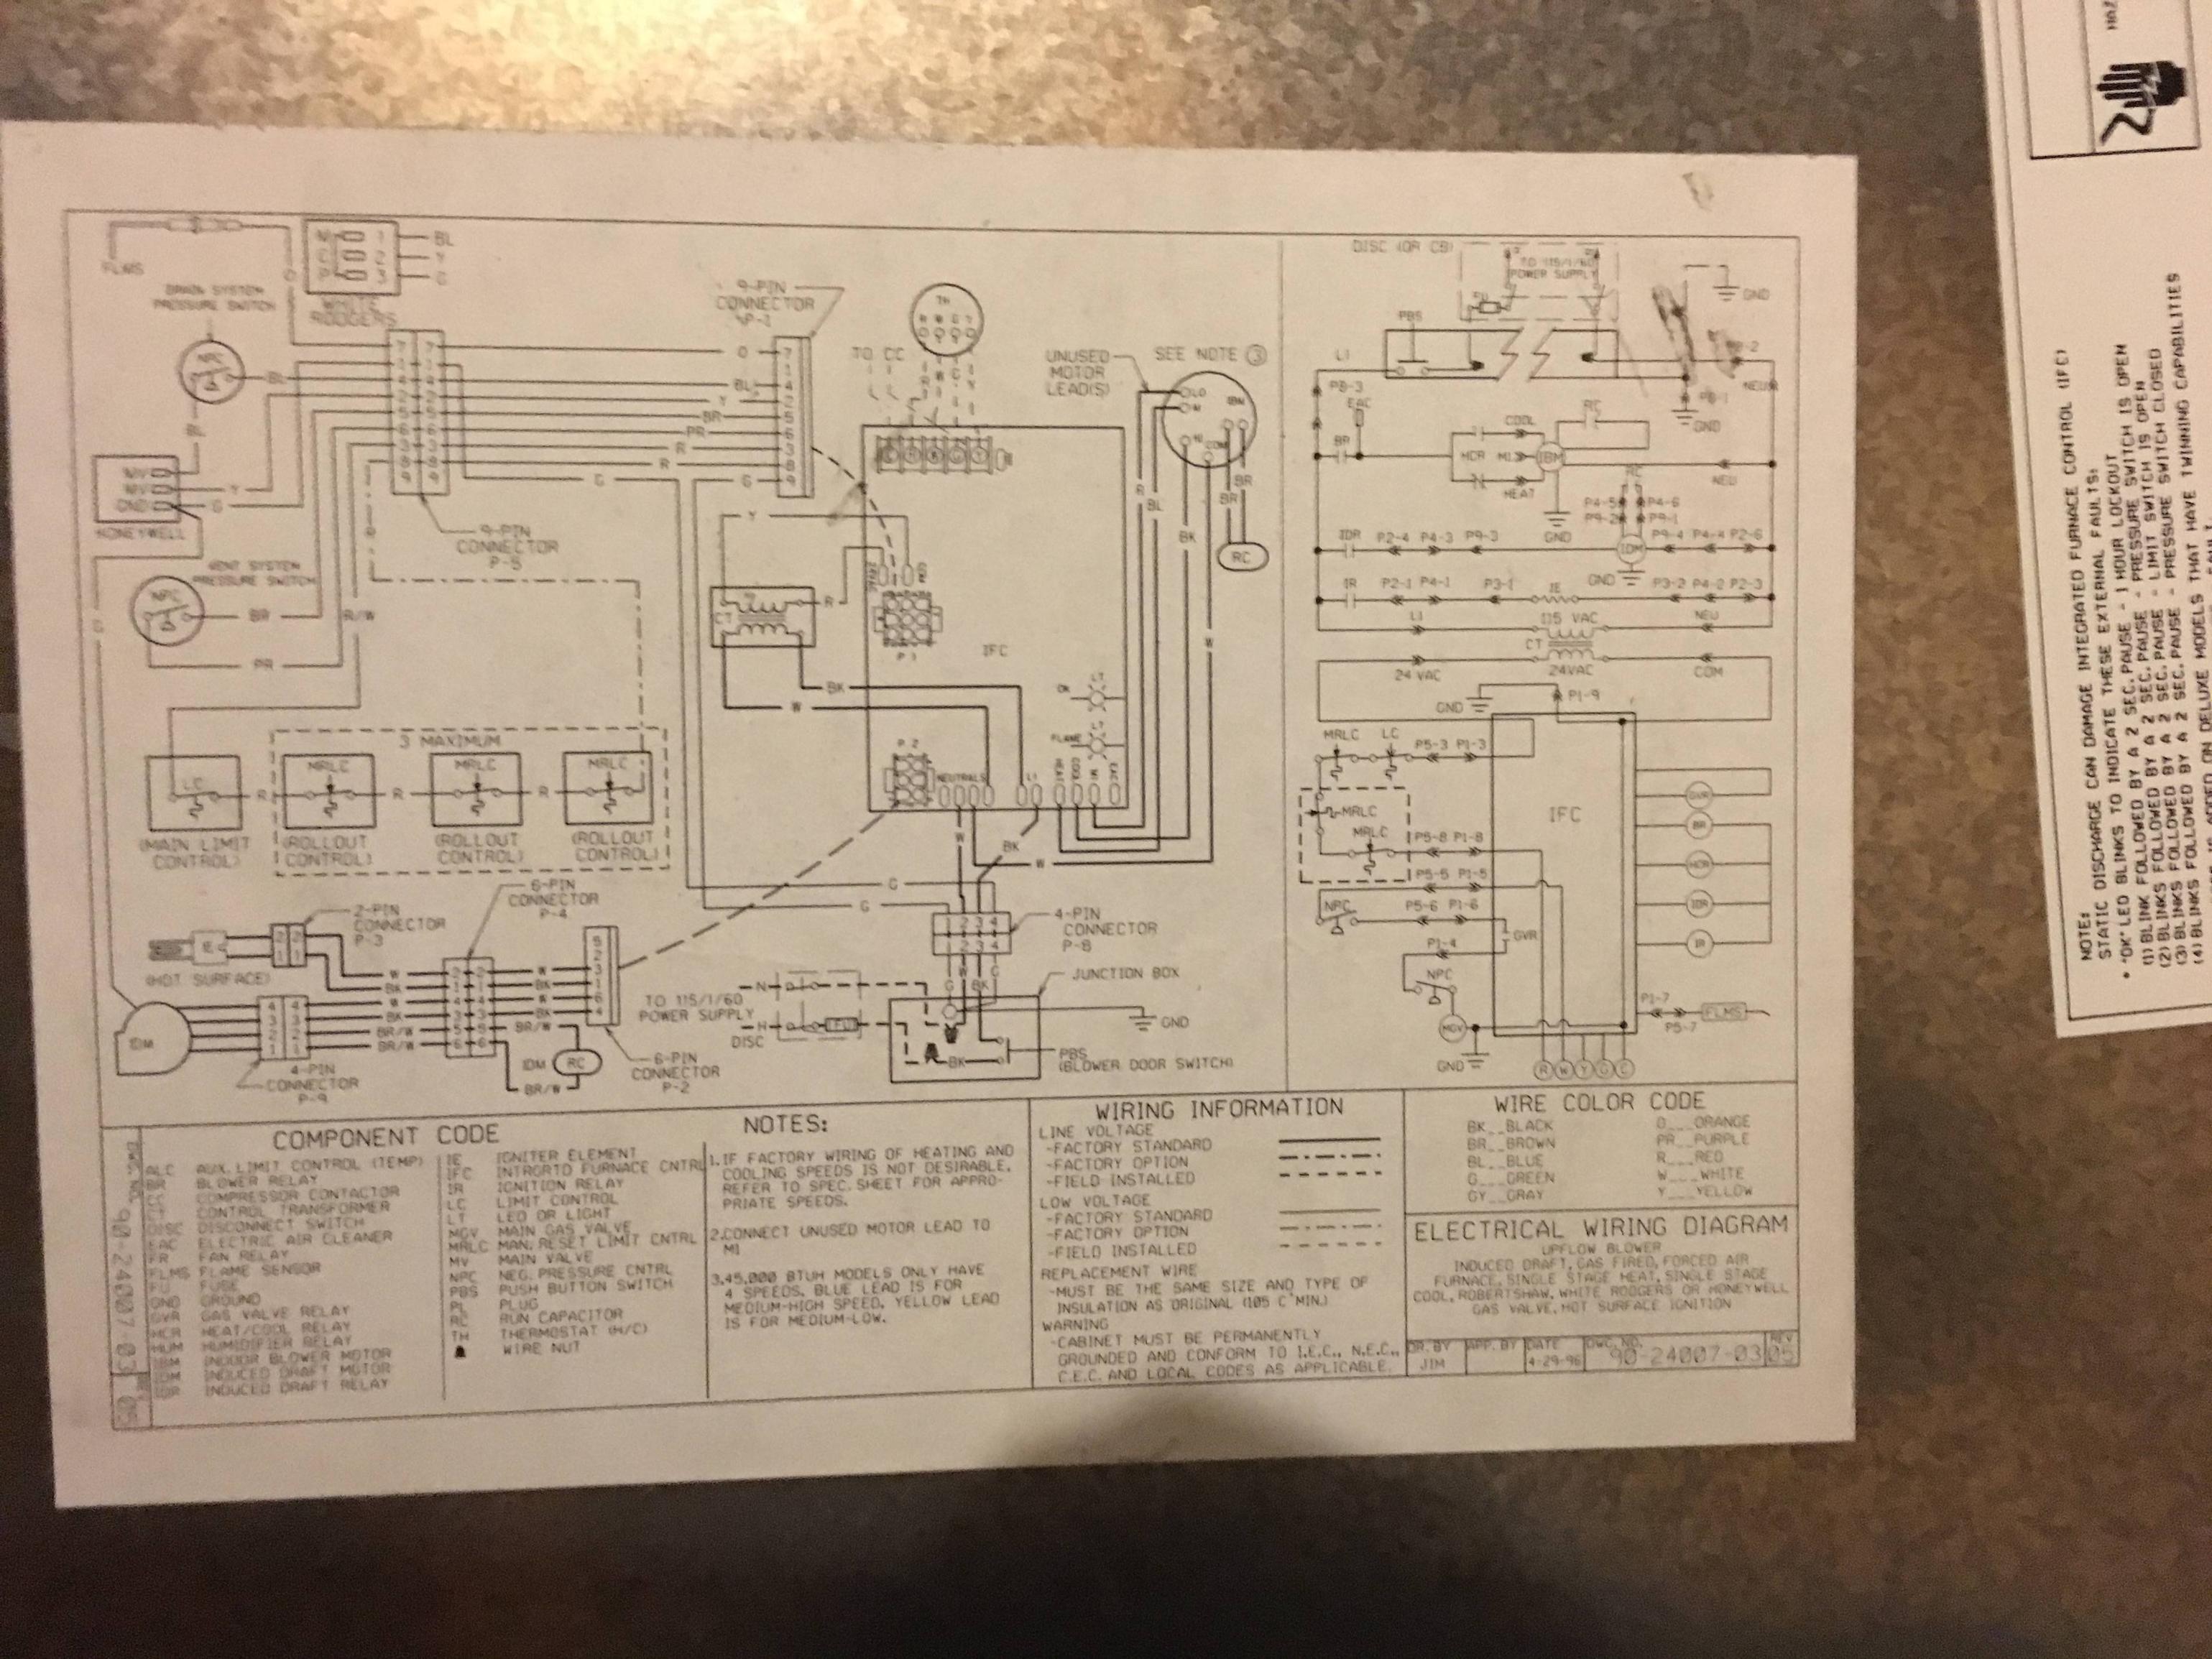 Rheem Heat Wiring Diagram Free Picture Schematic Trusted Ruud Urgg Diagrams Rgpj Furnace Explore U2022 Air Conditioning